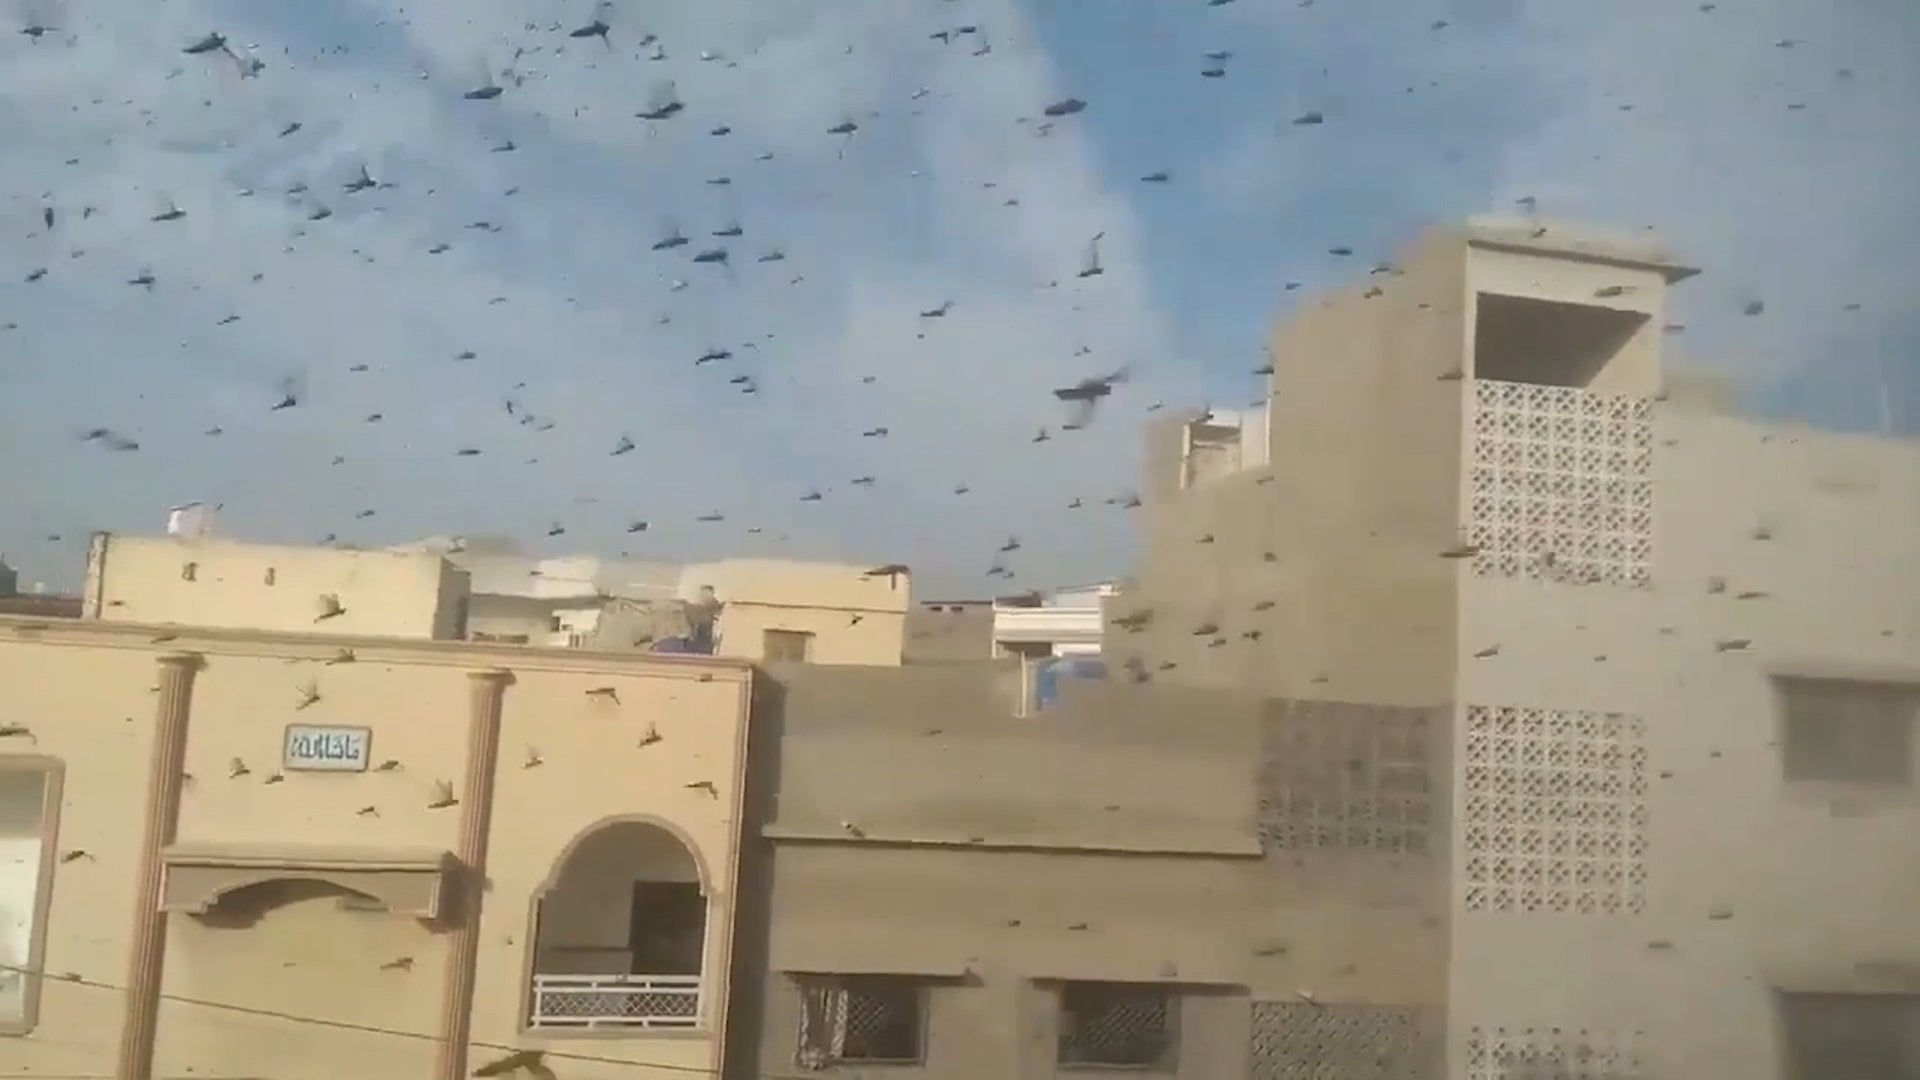 Huge swarms of the insects have descended near Karachi as they make their way from their breeding grounds to the coast.